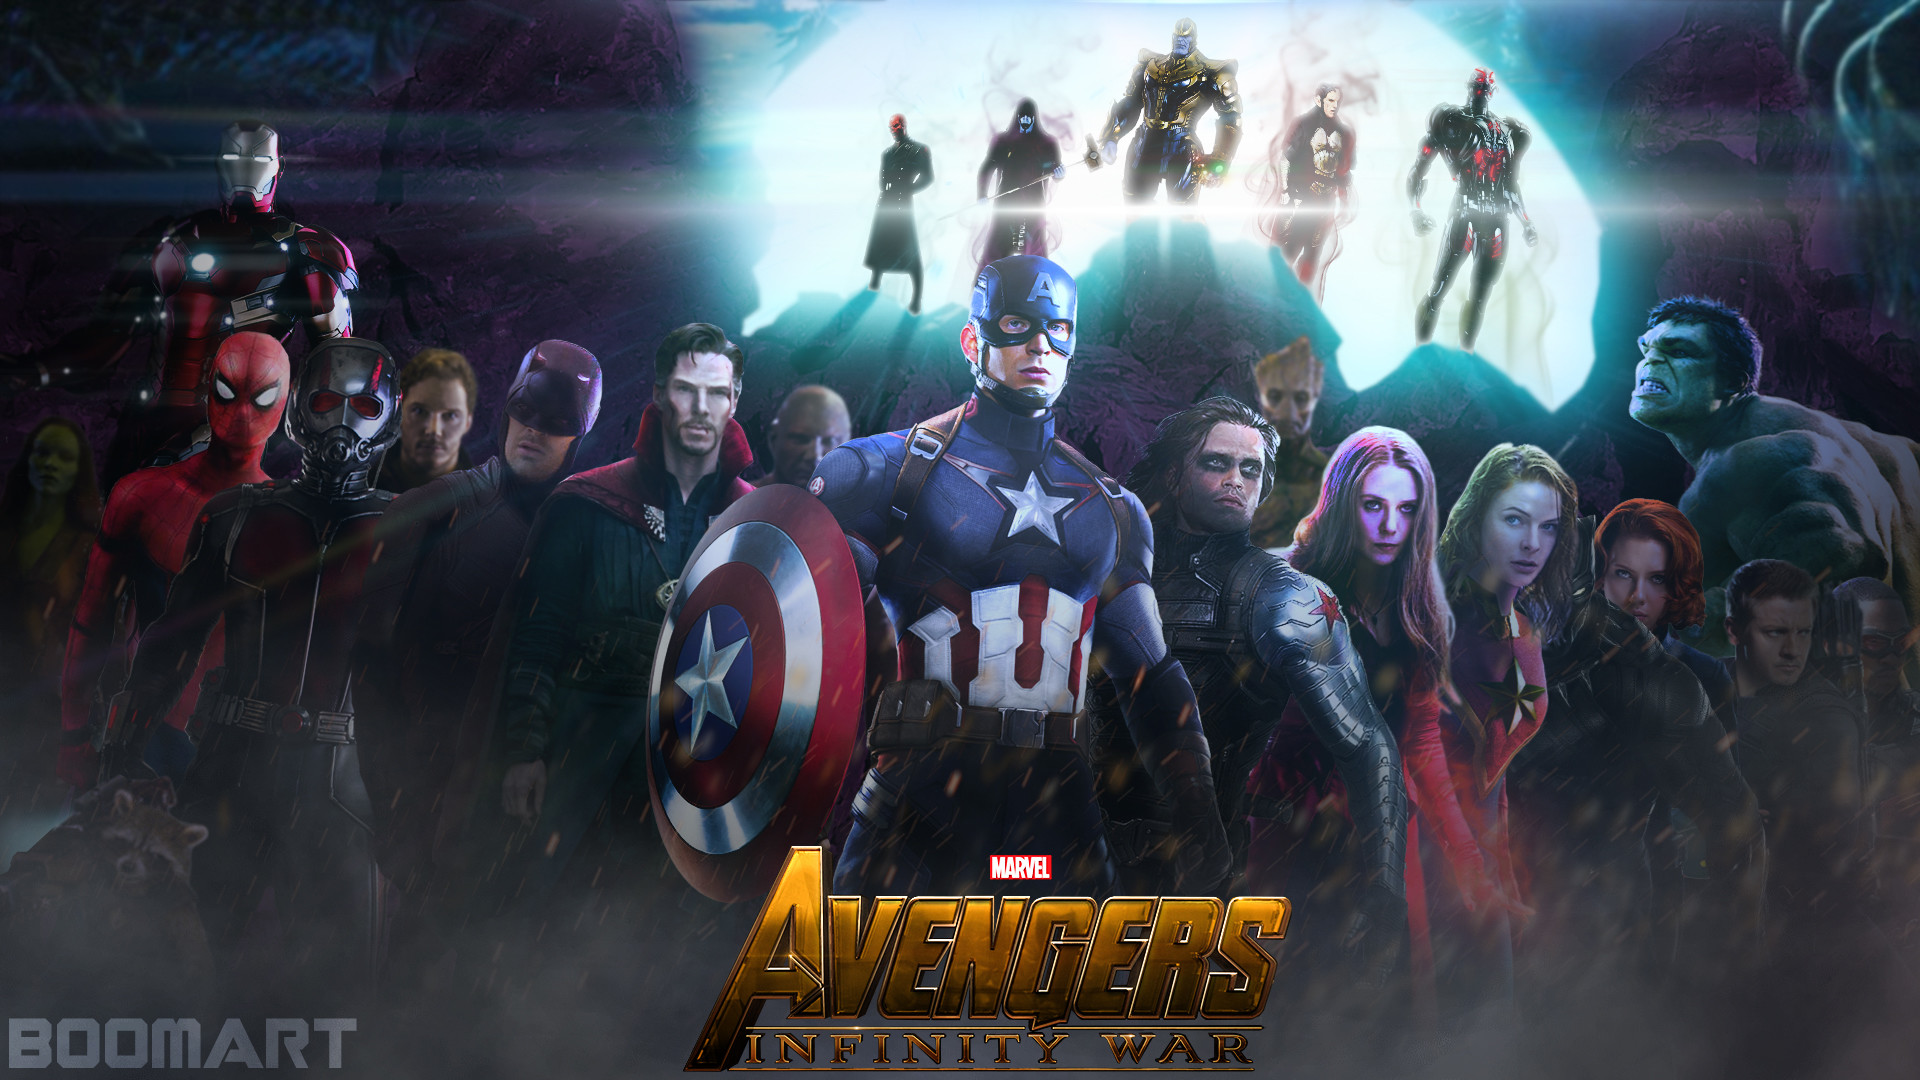 Dual Monitor Animated Wallpaper Avengers Infinity War Wallpapers 183 ①